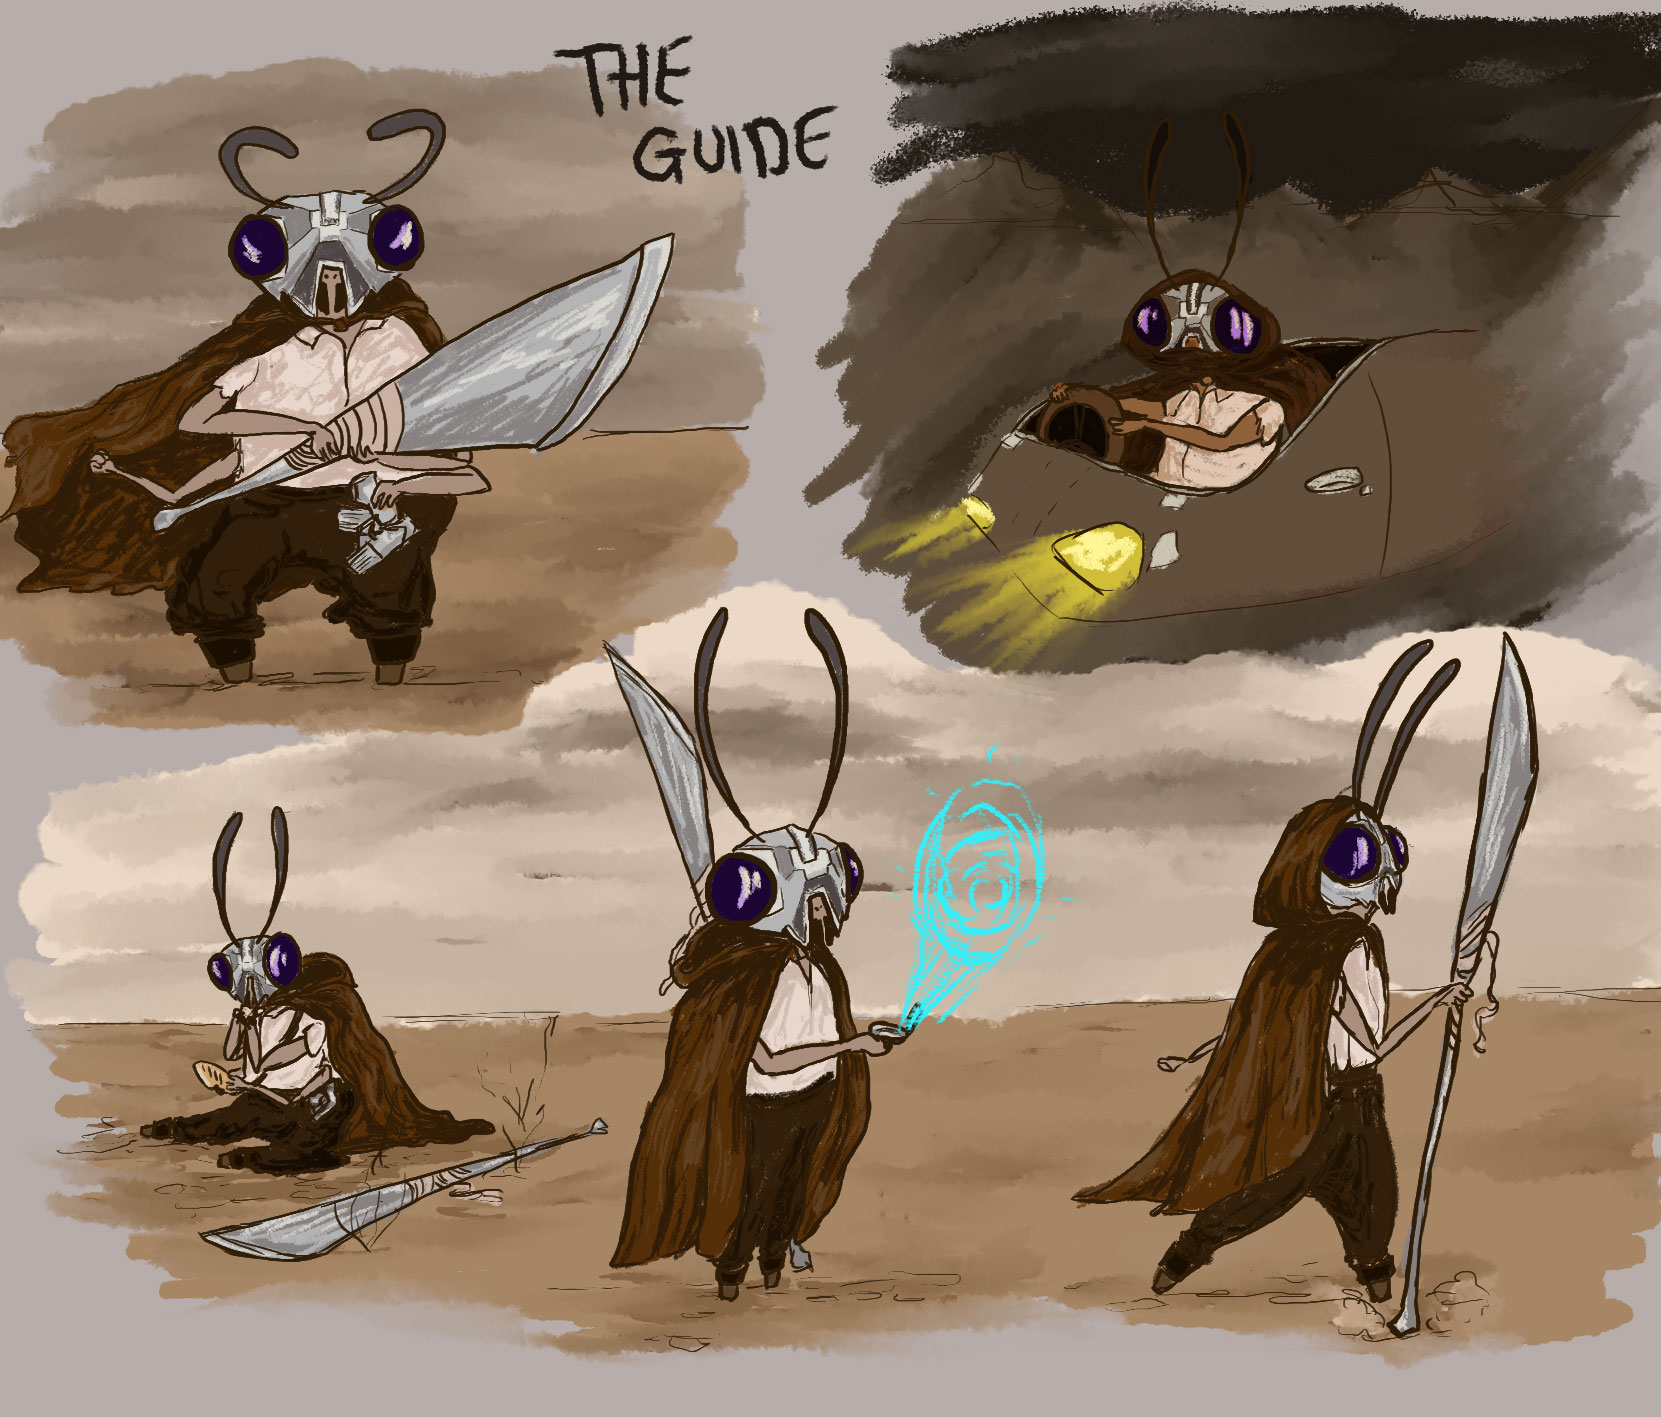 Digital paintings of an anthropomorphic bug character with a robotic headpiece performing various activities in a desert environment.